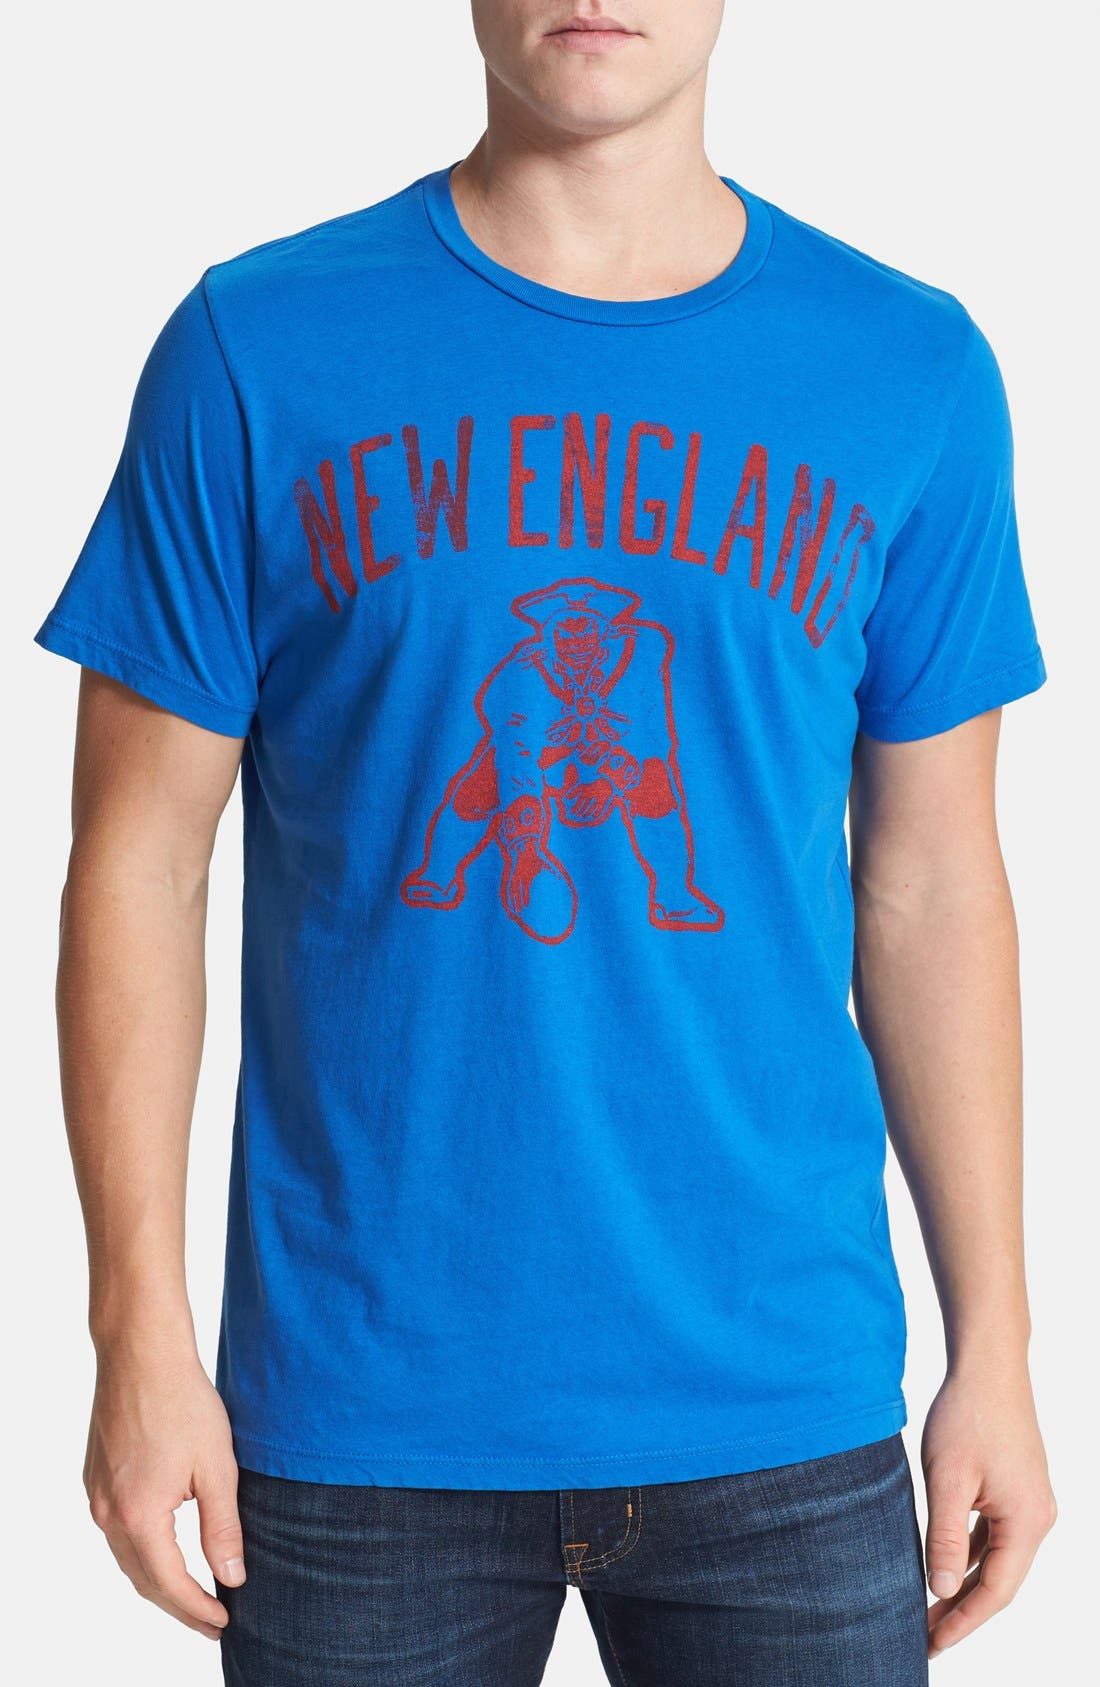 Alternate Image 1 Selected - Junk Food 'New England Patriots' Graphic T-Shirt